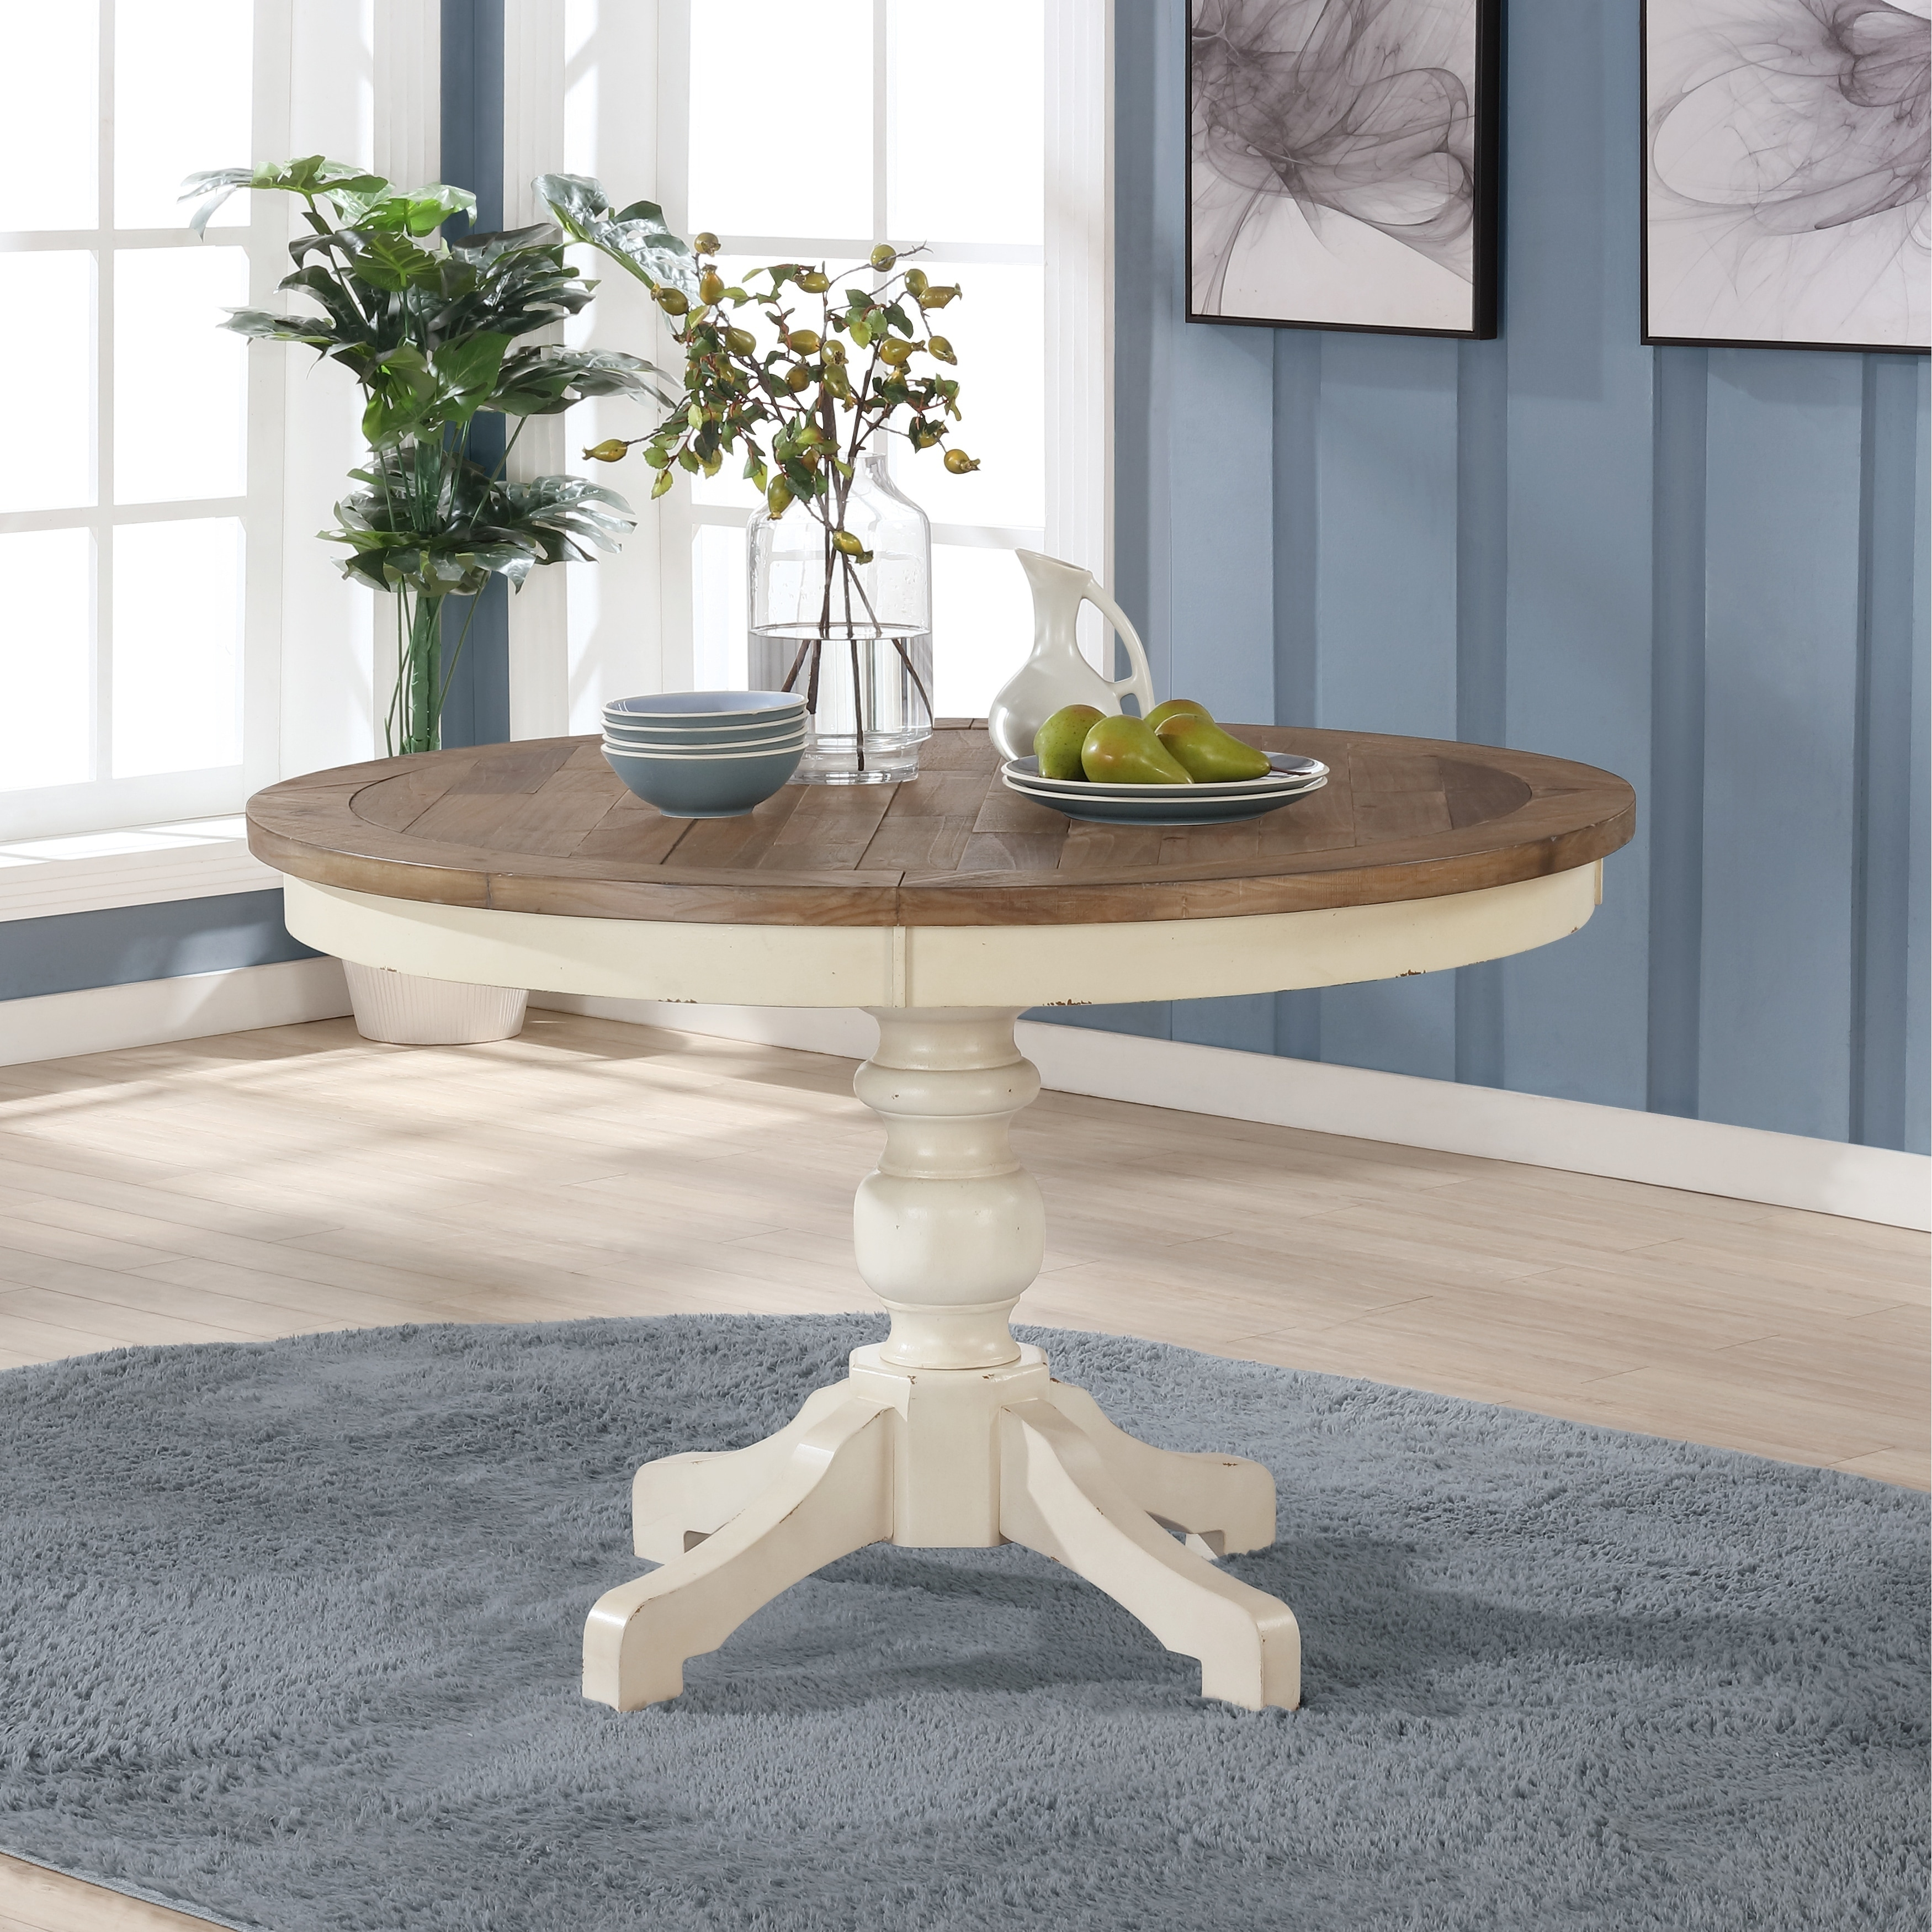 Prato Round Antique White And Distressed Oak Two Tone Finish Wood Dining Table On Sale Overstock 30933198